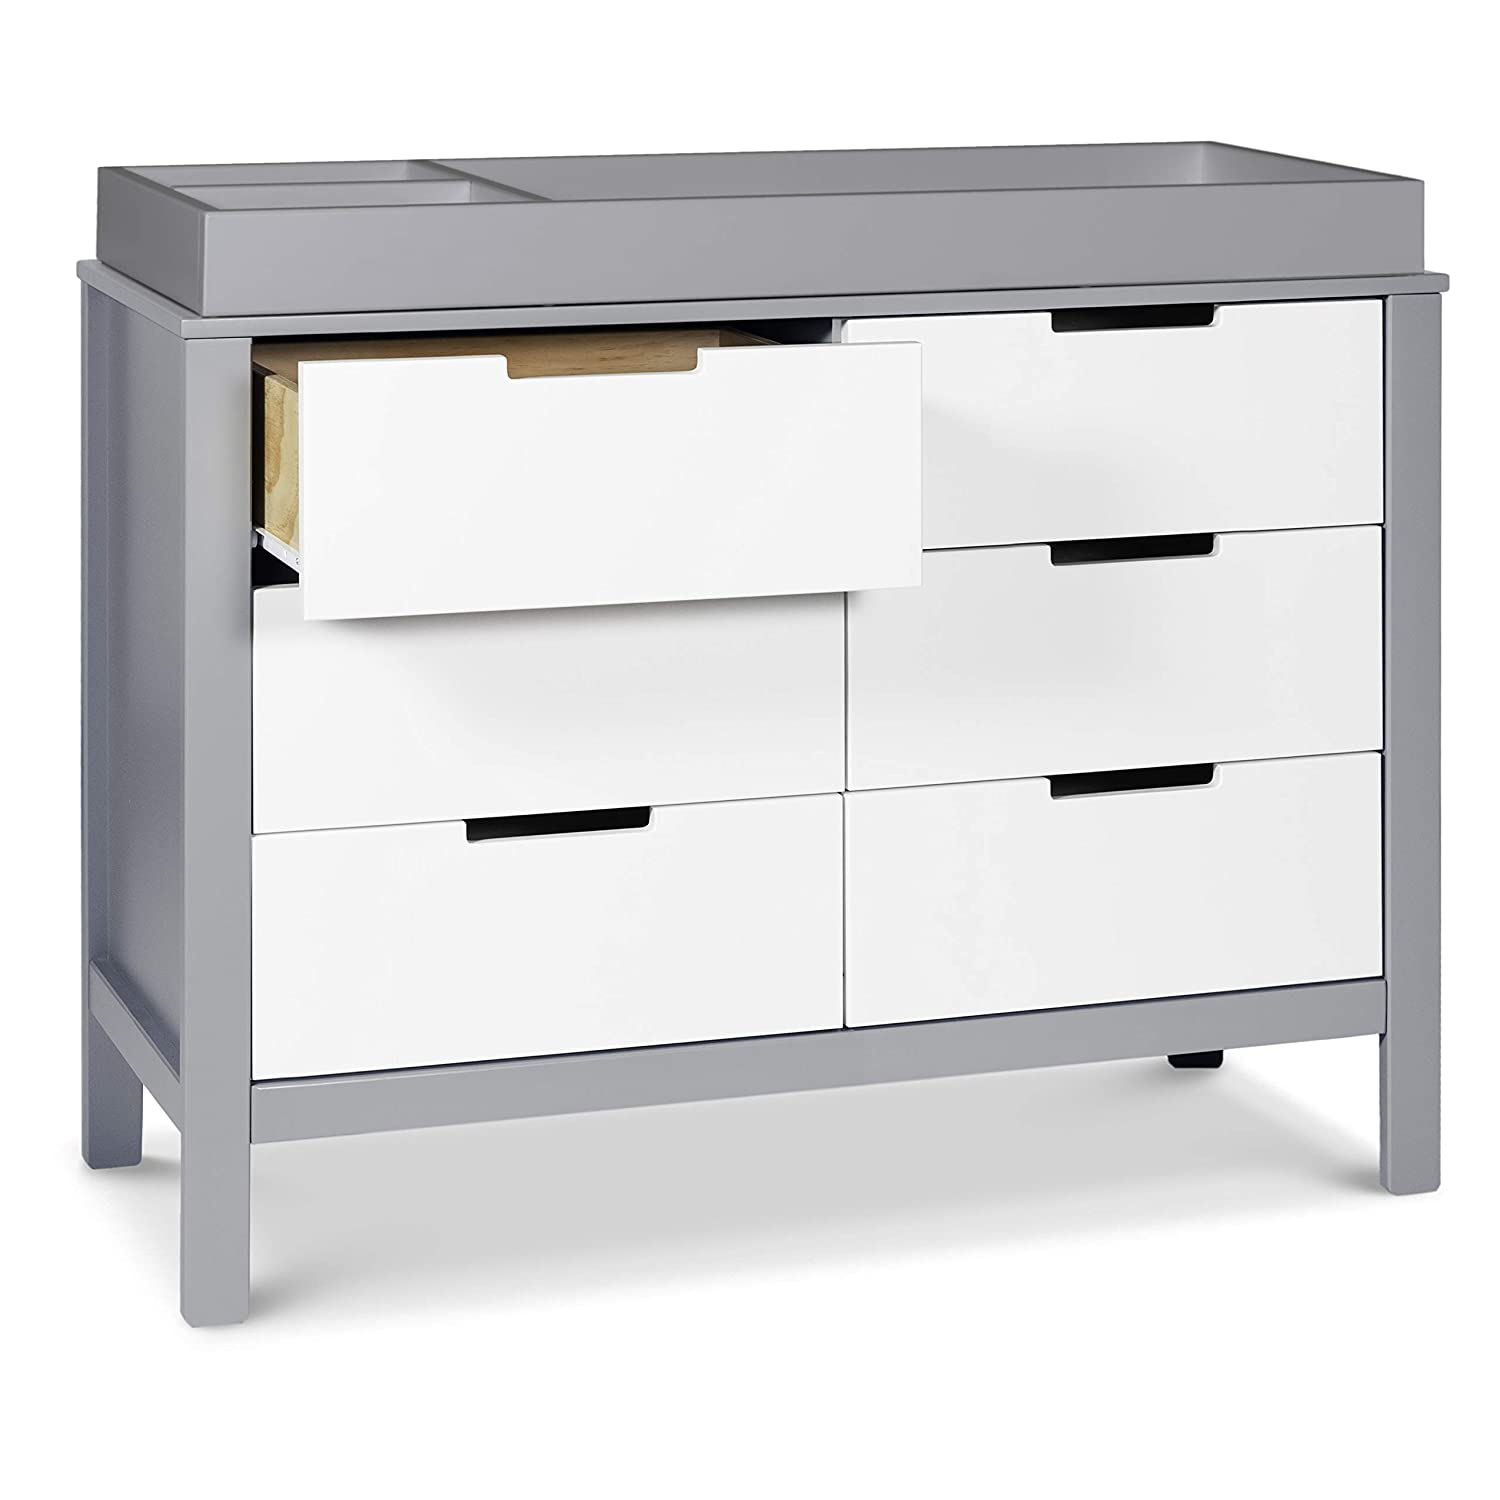 Carter's by Davinci Colby 6-Drawer Dresser in Grey and White